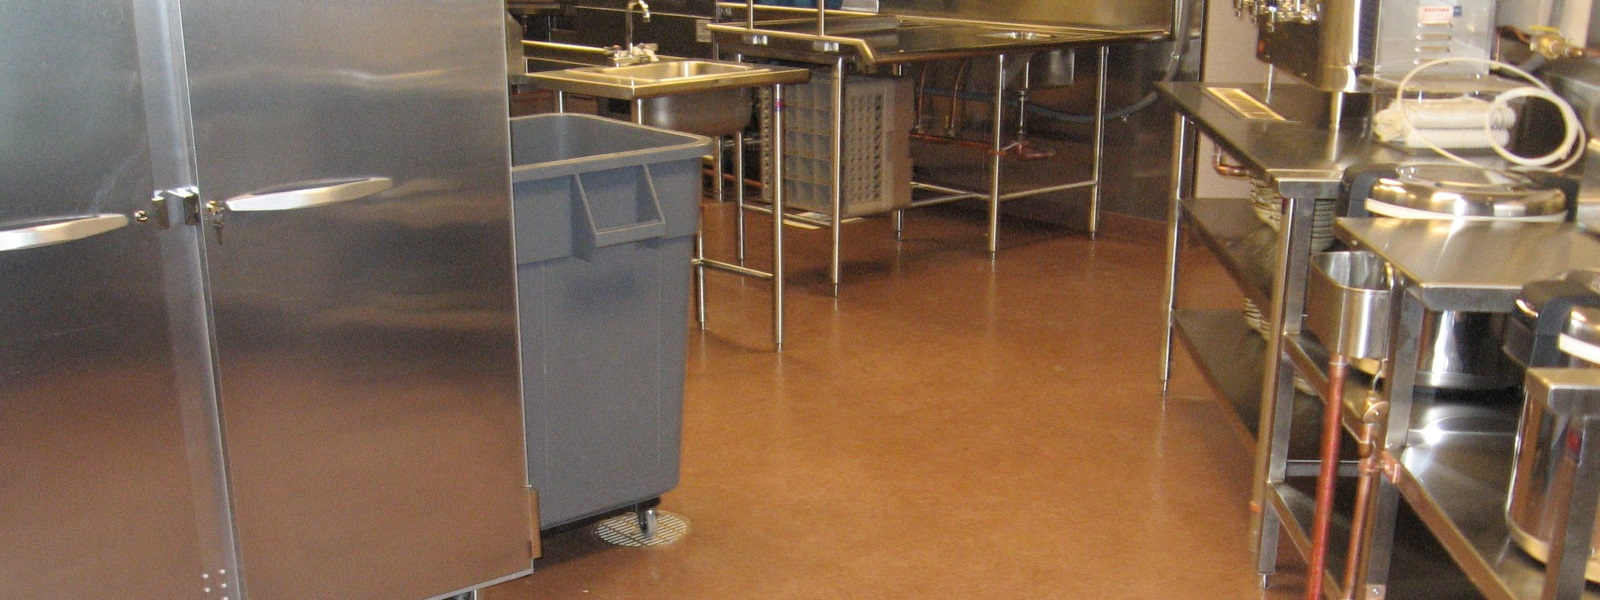 commercial kitchen floors - delaware concrete coatings